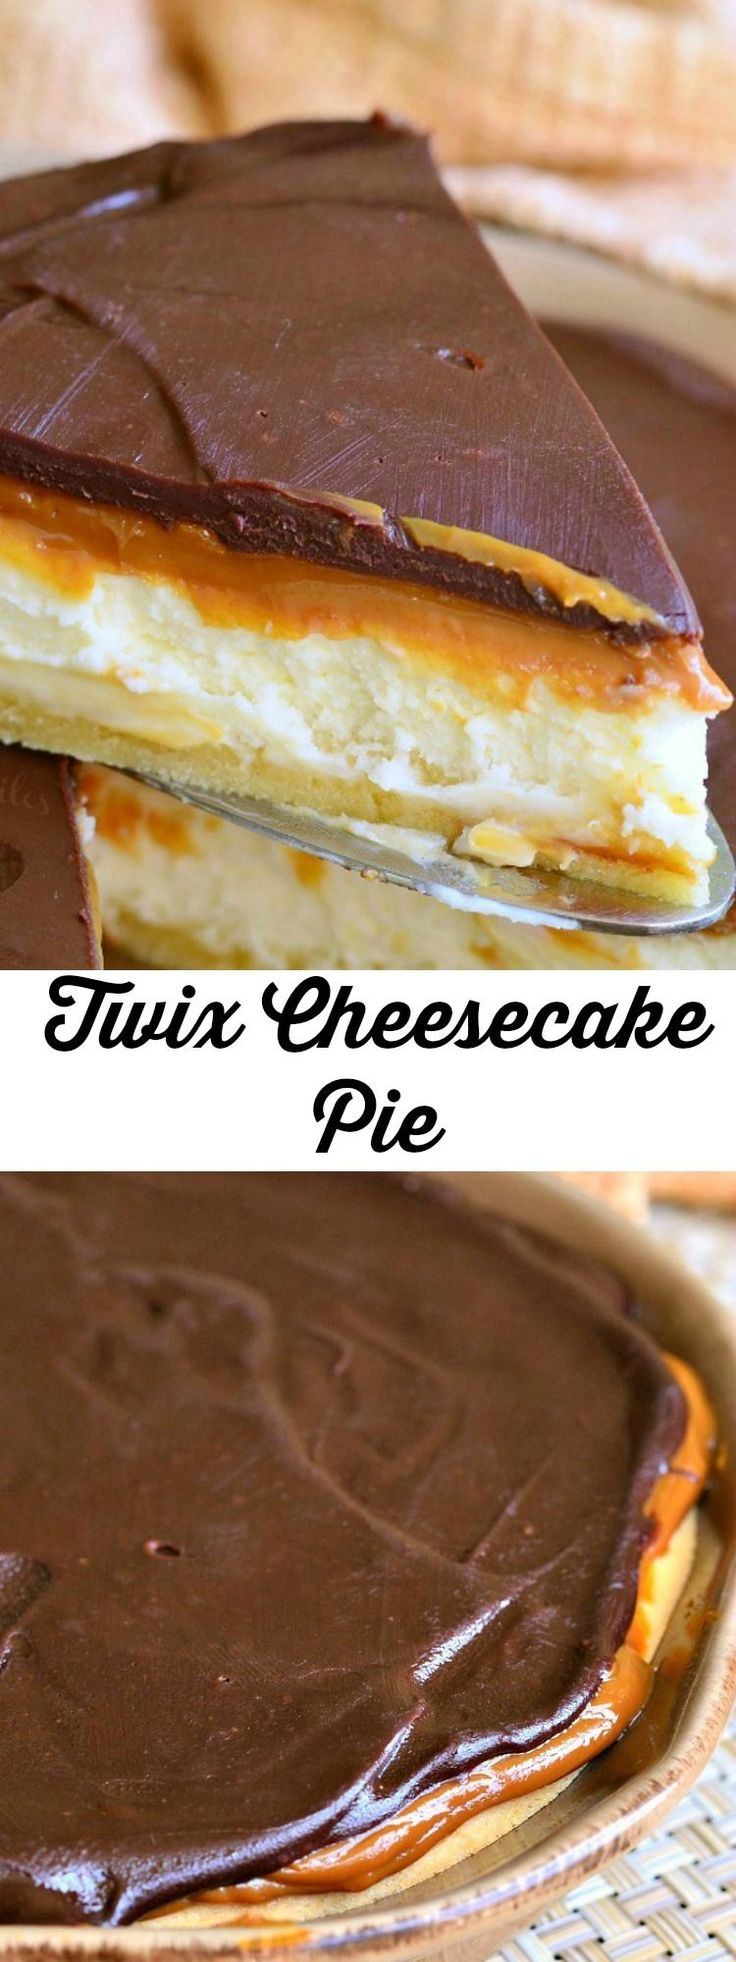 Twix Cheesecake Pie. Sugar cookie crust filled with smooth cheesecake and topped with a thick layer of Dulce de Leche and milk chocolate ganache.